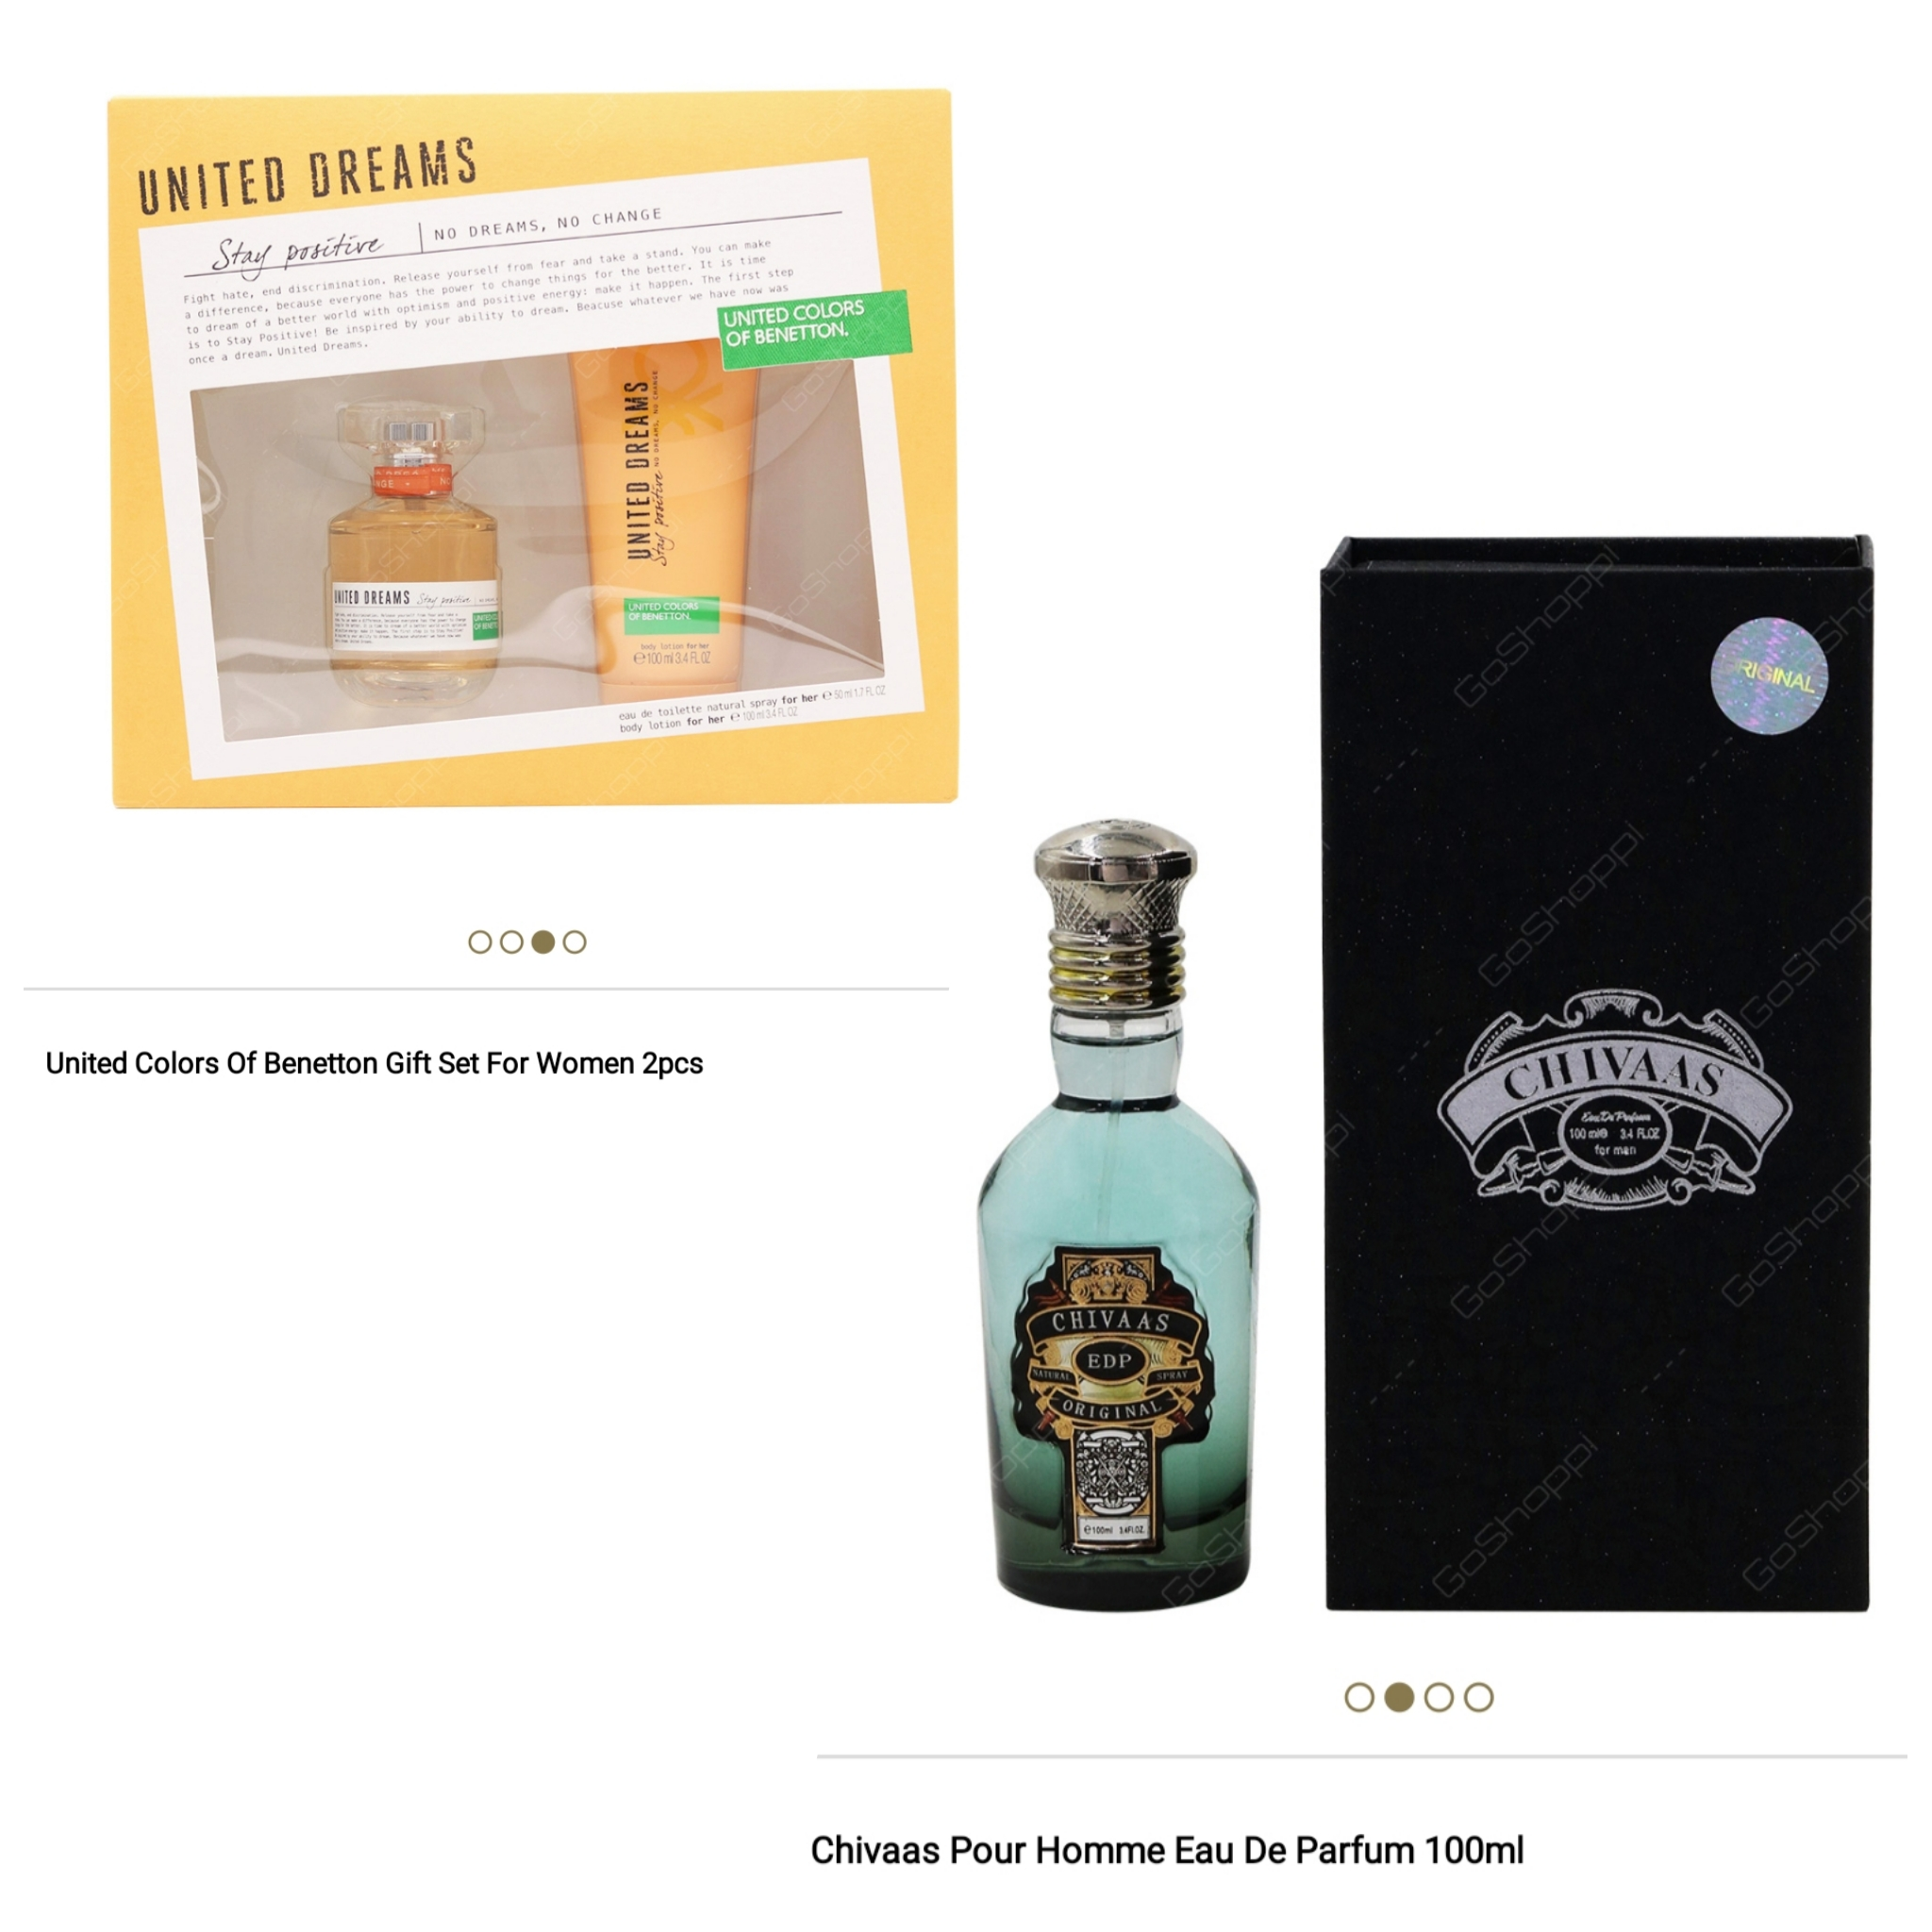 Chivaas Edp 100ml and United Colors Of Benetton Gift Sets Combo Offer